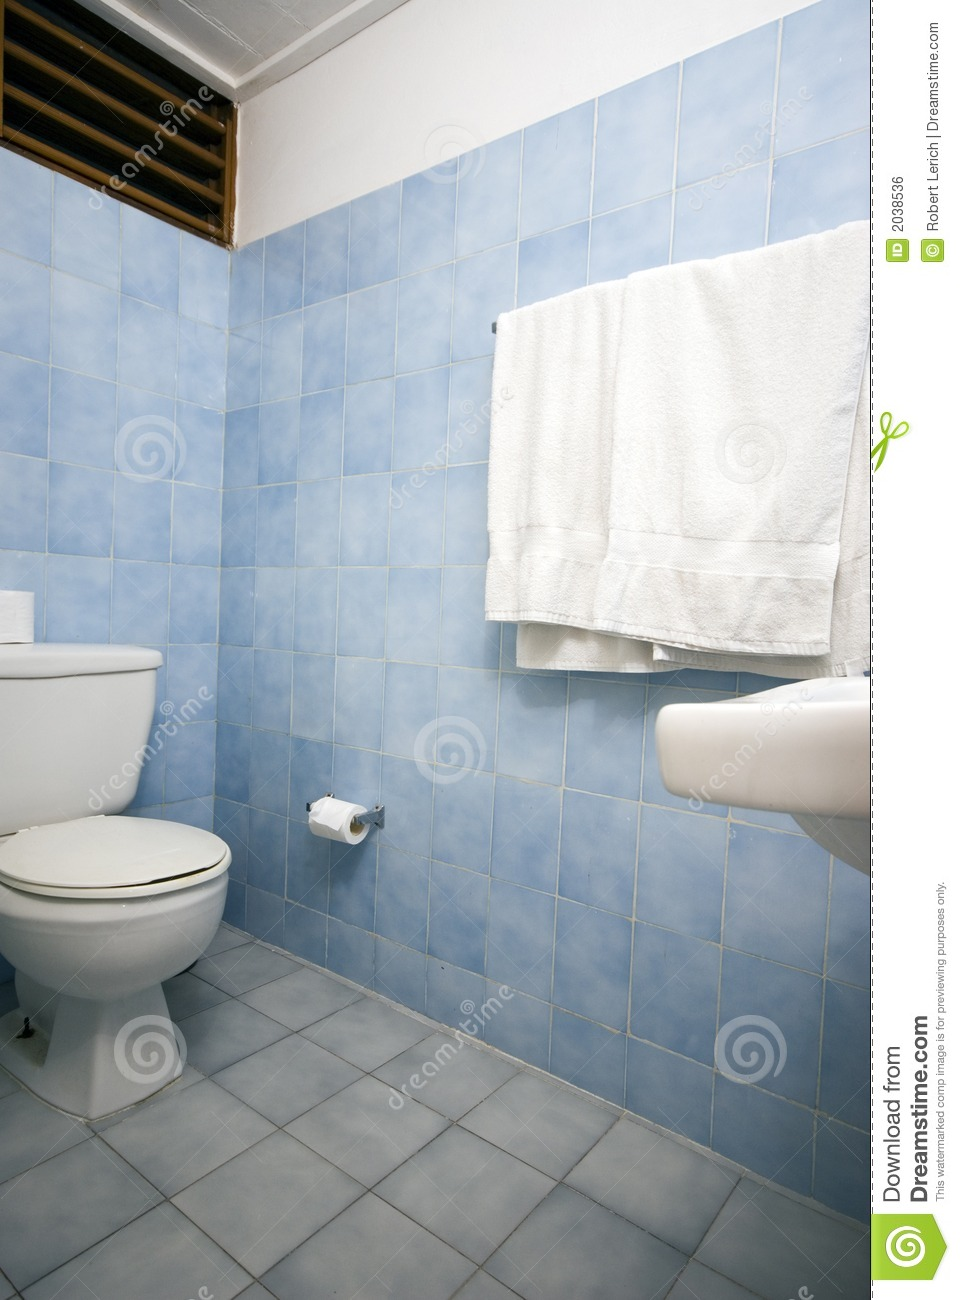 Bathroom With Blue Tile Royalty Free Stock Image  Image